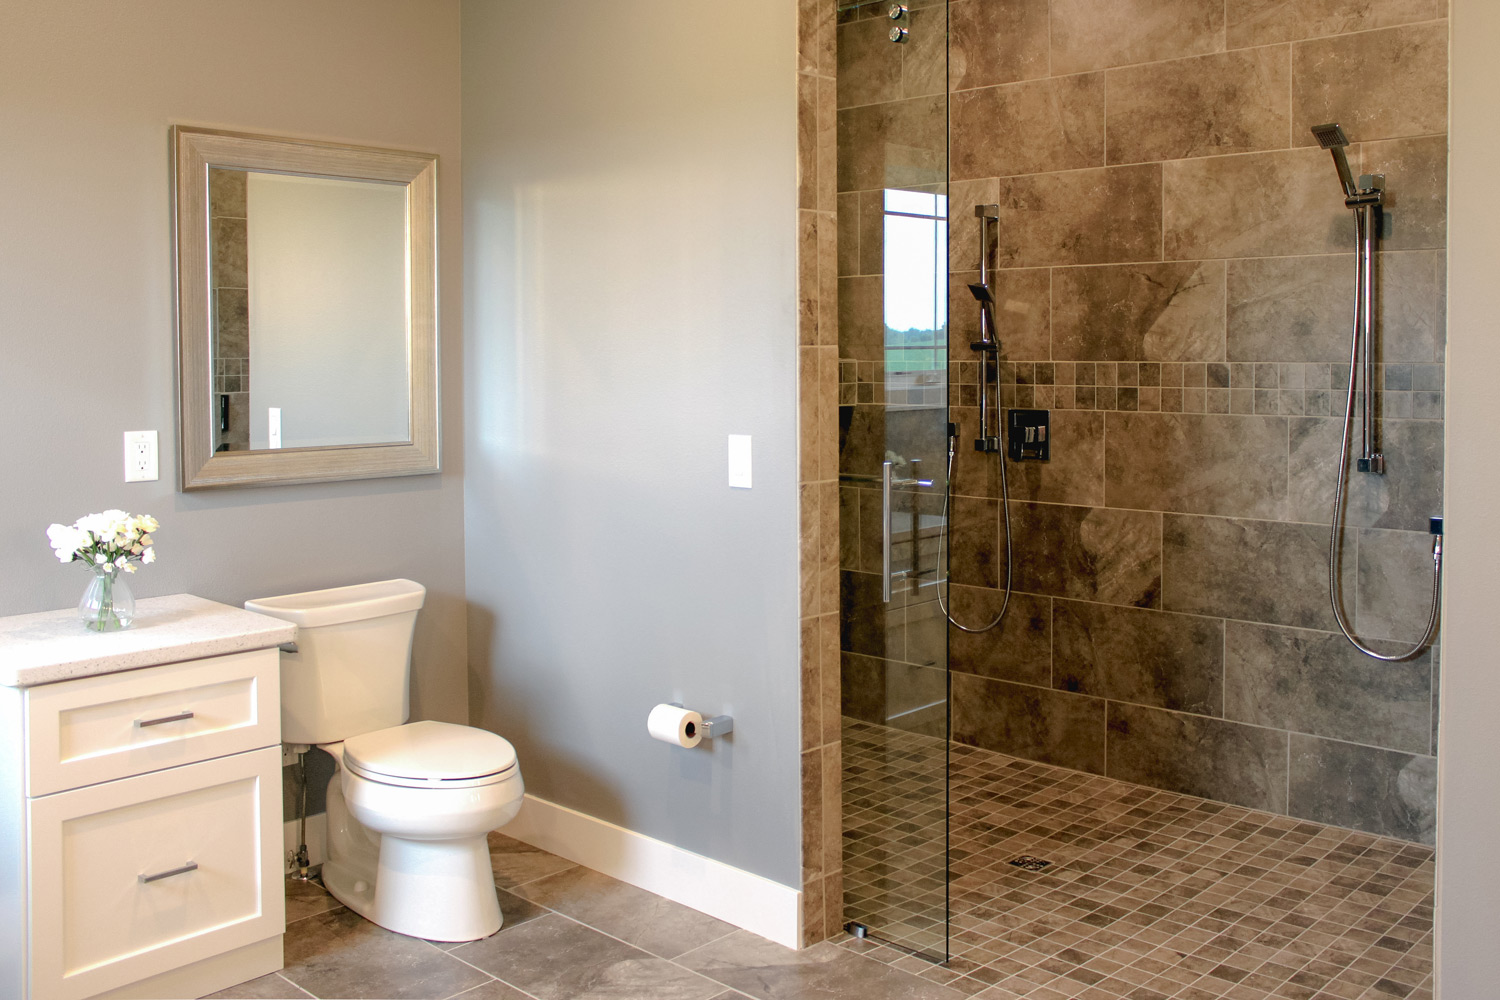 Bathroom remodeling trends in Madison, WI